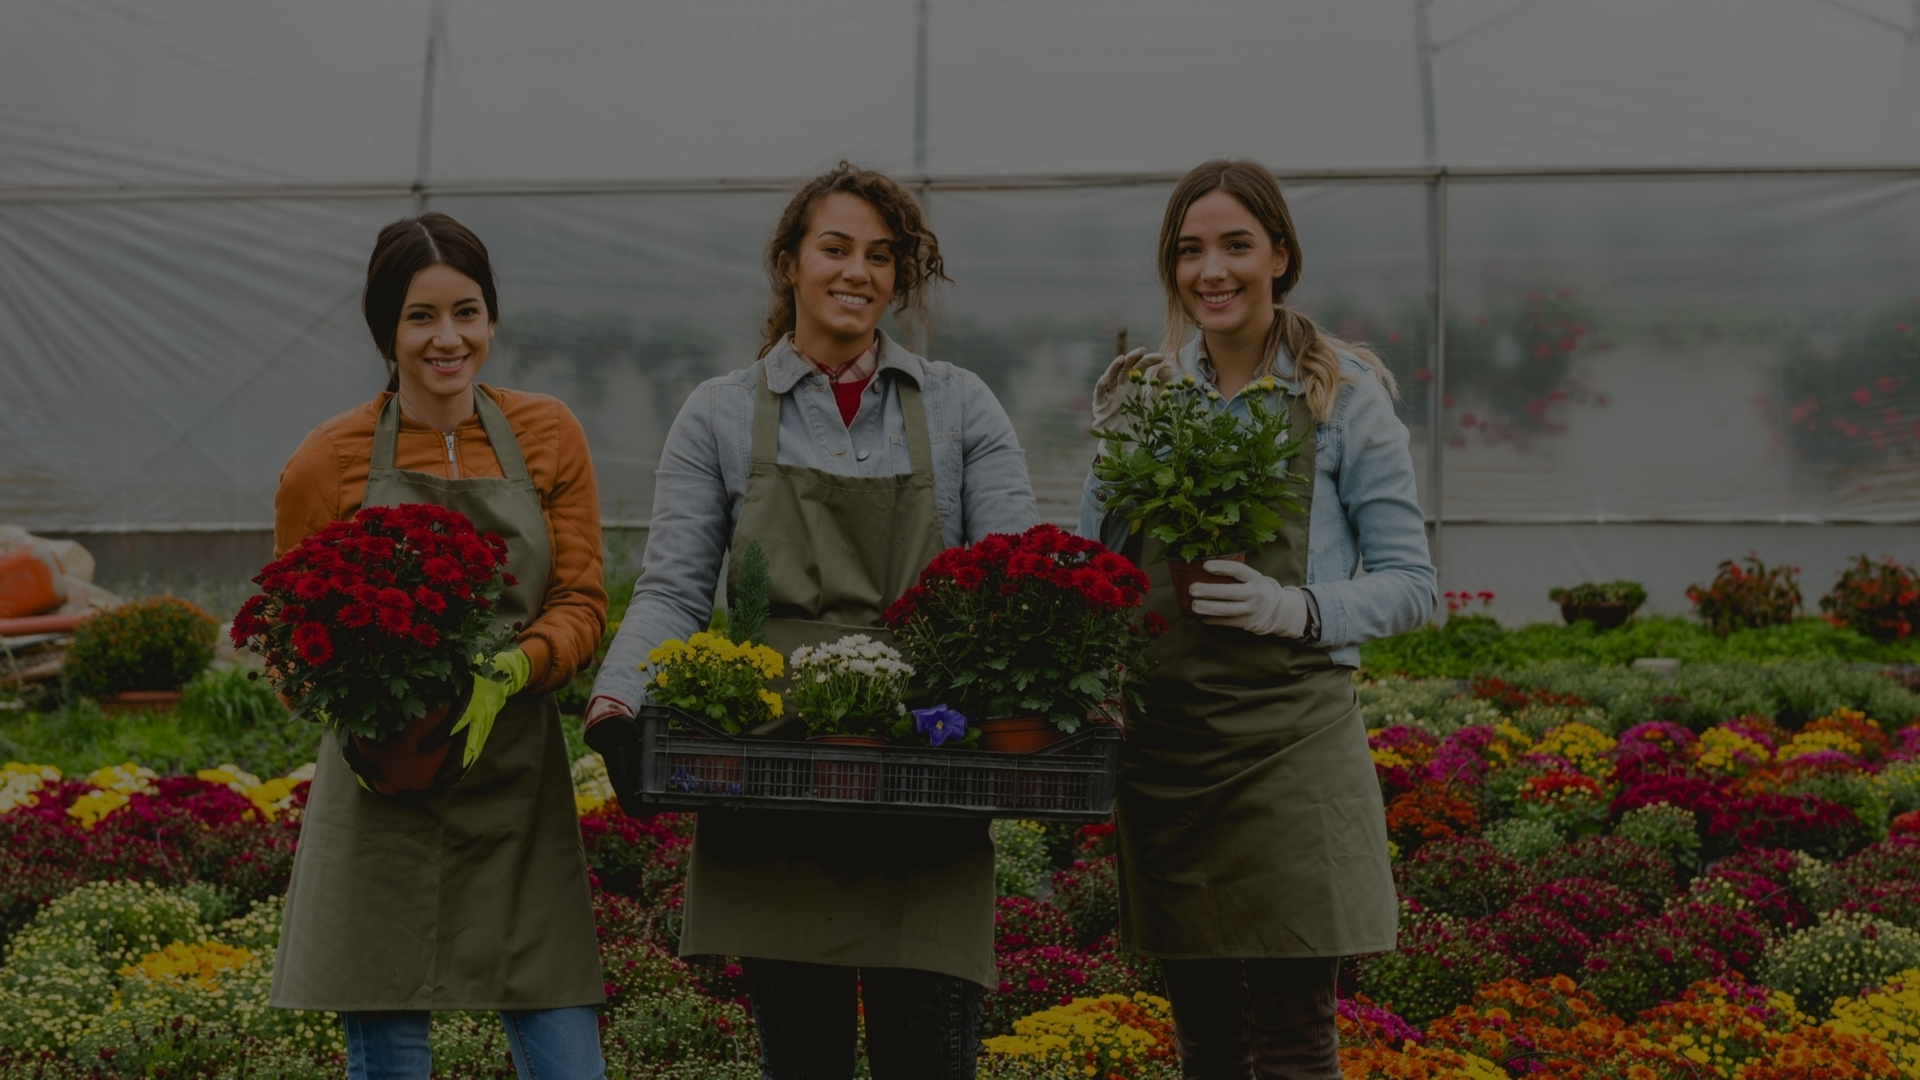 A Definitive Lifting and Handling Checklist For Garden Centres